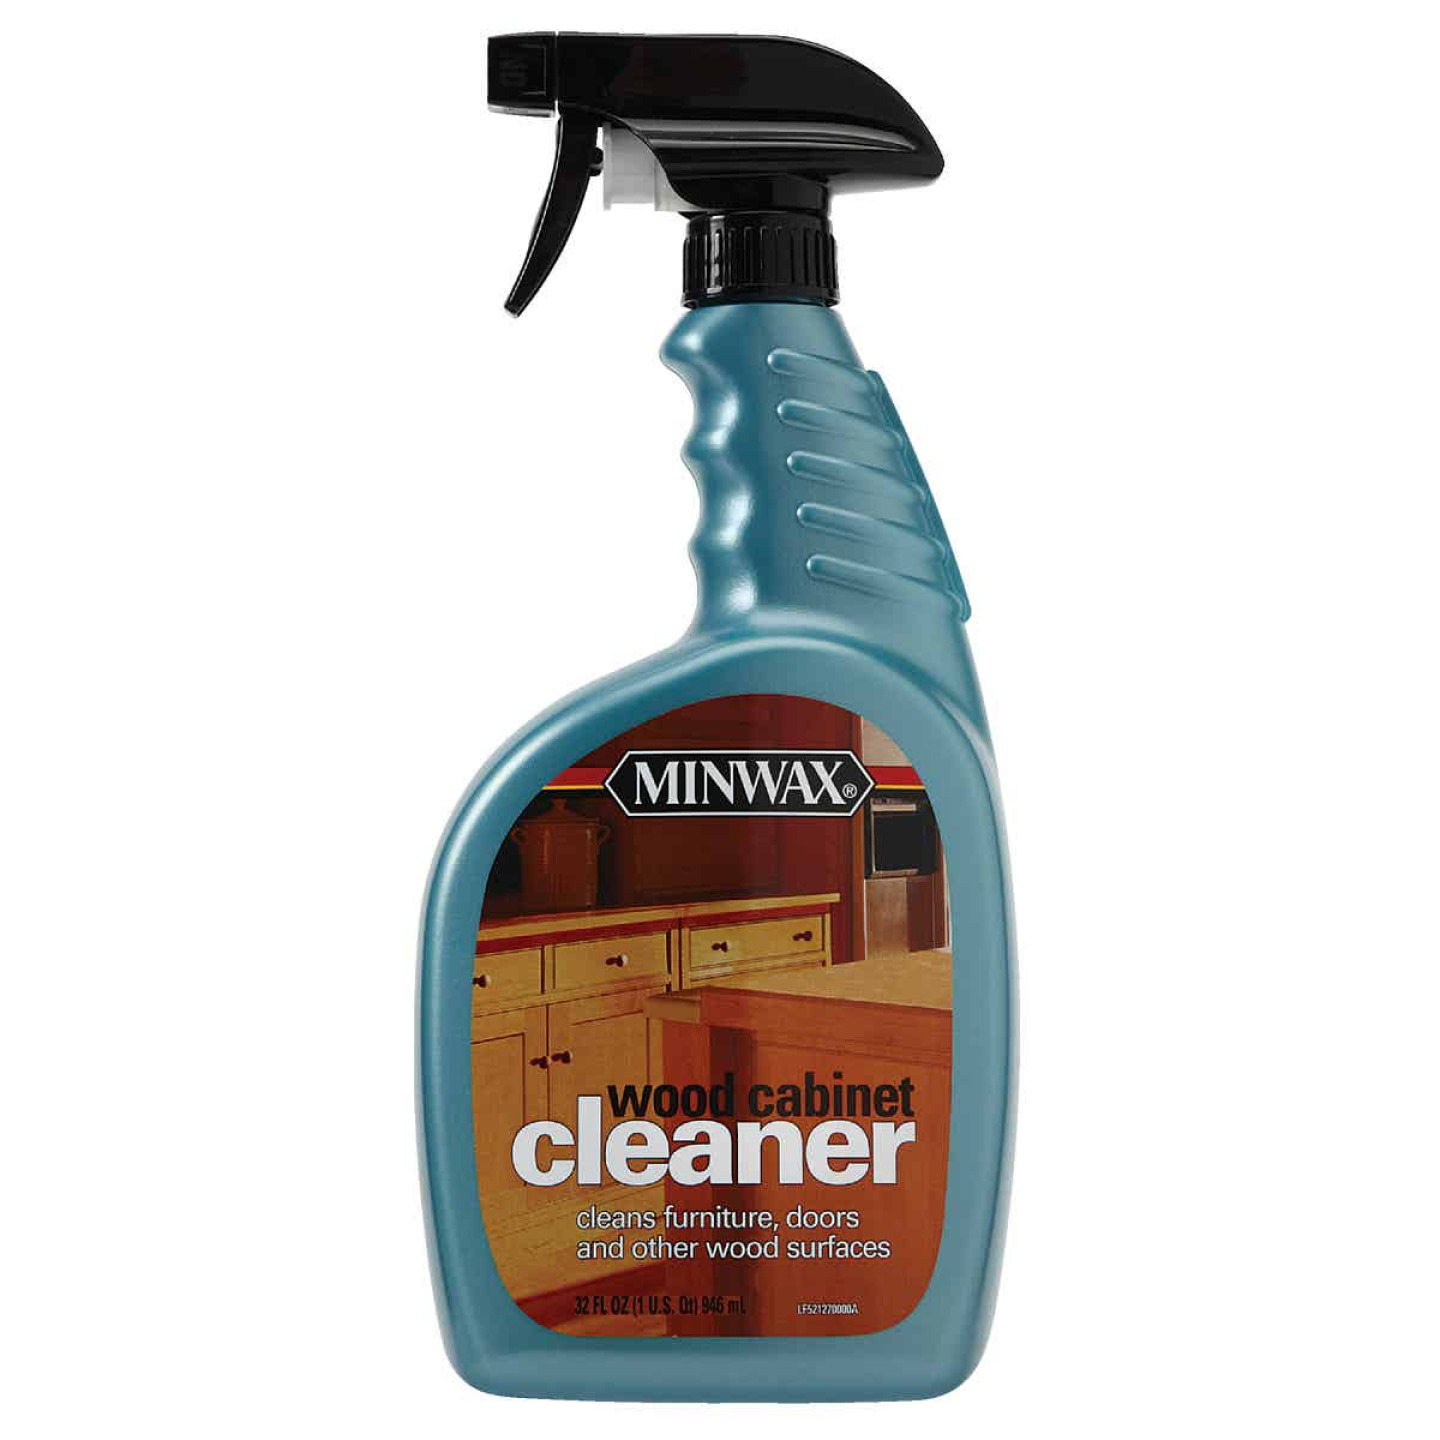 Minwax 32 Oz. Wood Cabinet Cleaner Image 4